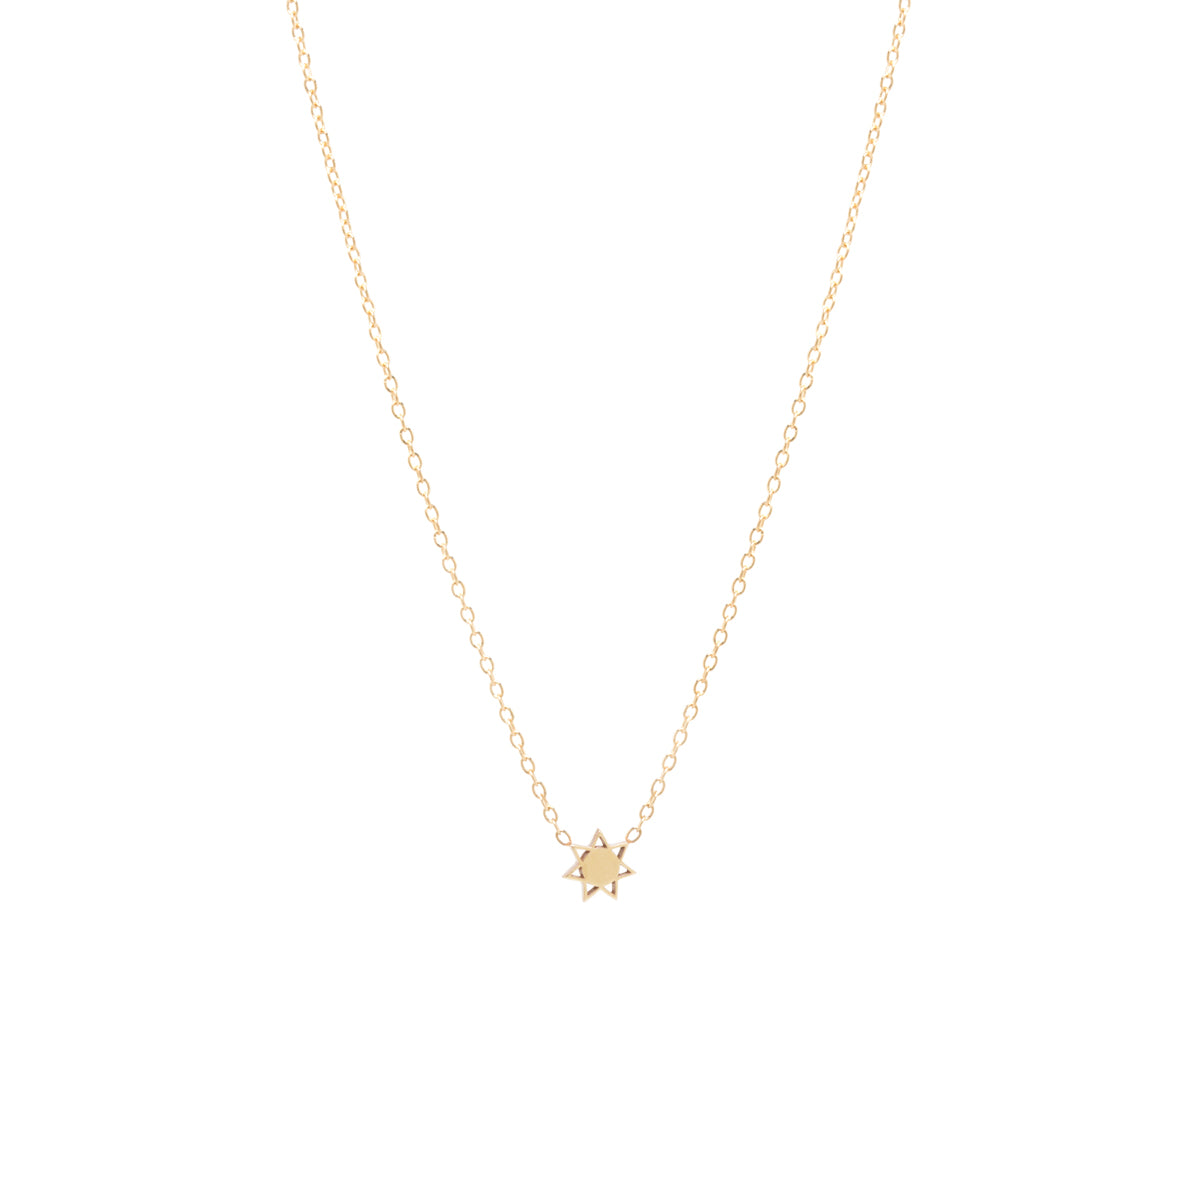 14k itty bitty sun necklace